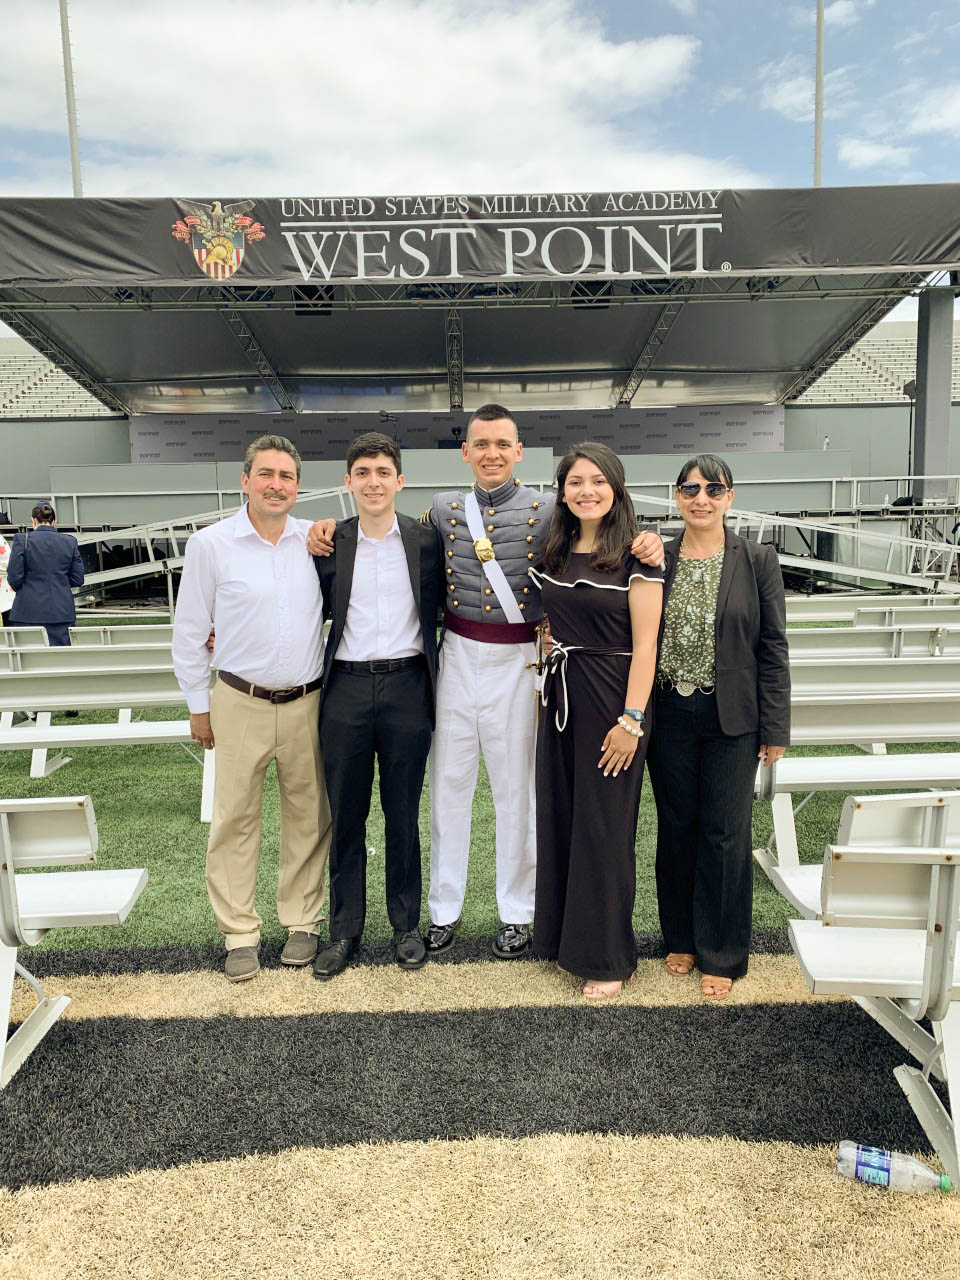 Jesus Cortez and four family members at West Point